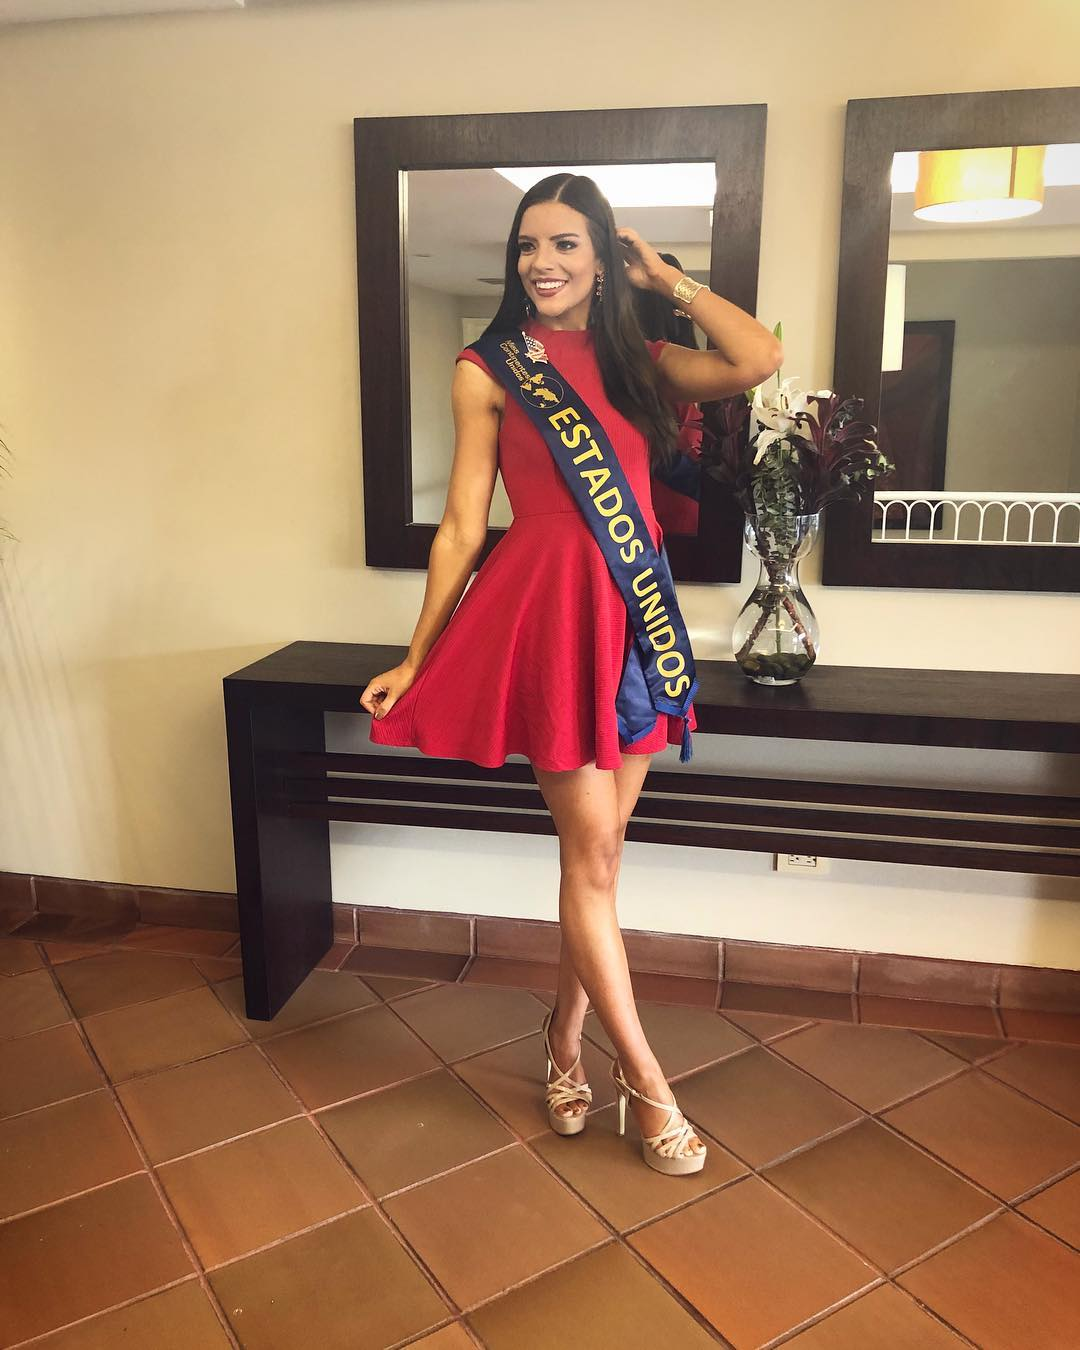 jessica van gaalen, miss united continents usa/miss eco usa 2018. - Página 6 40516910